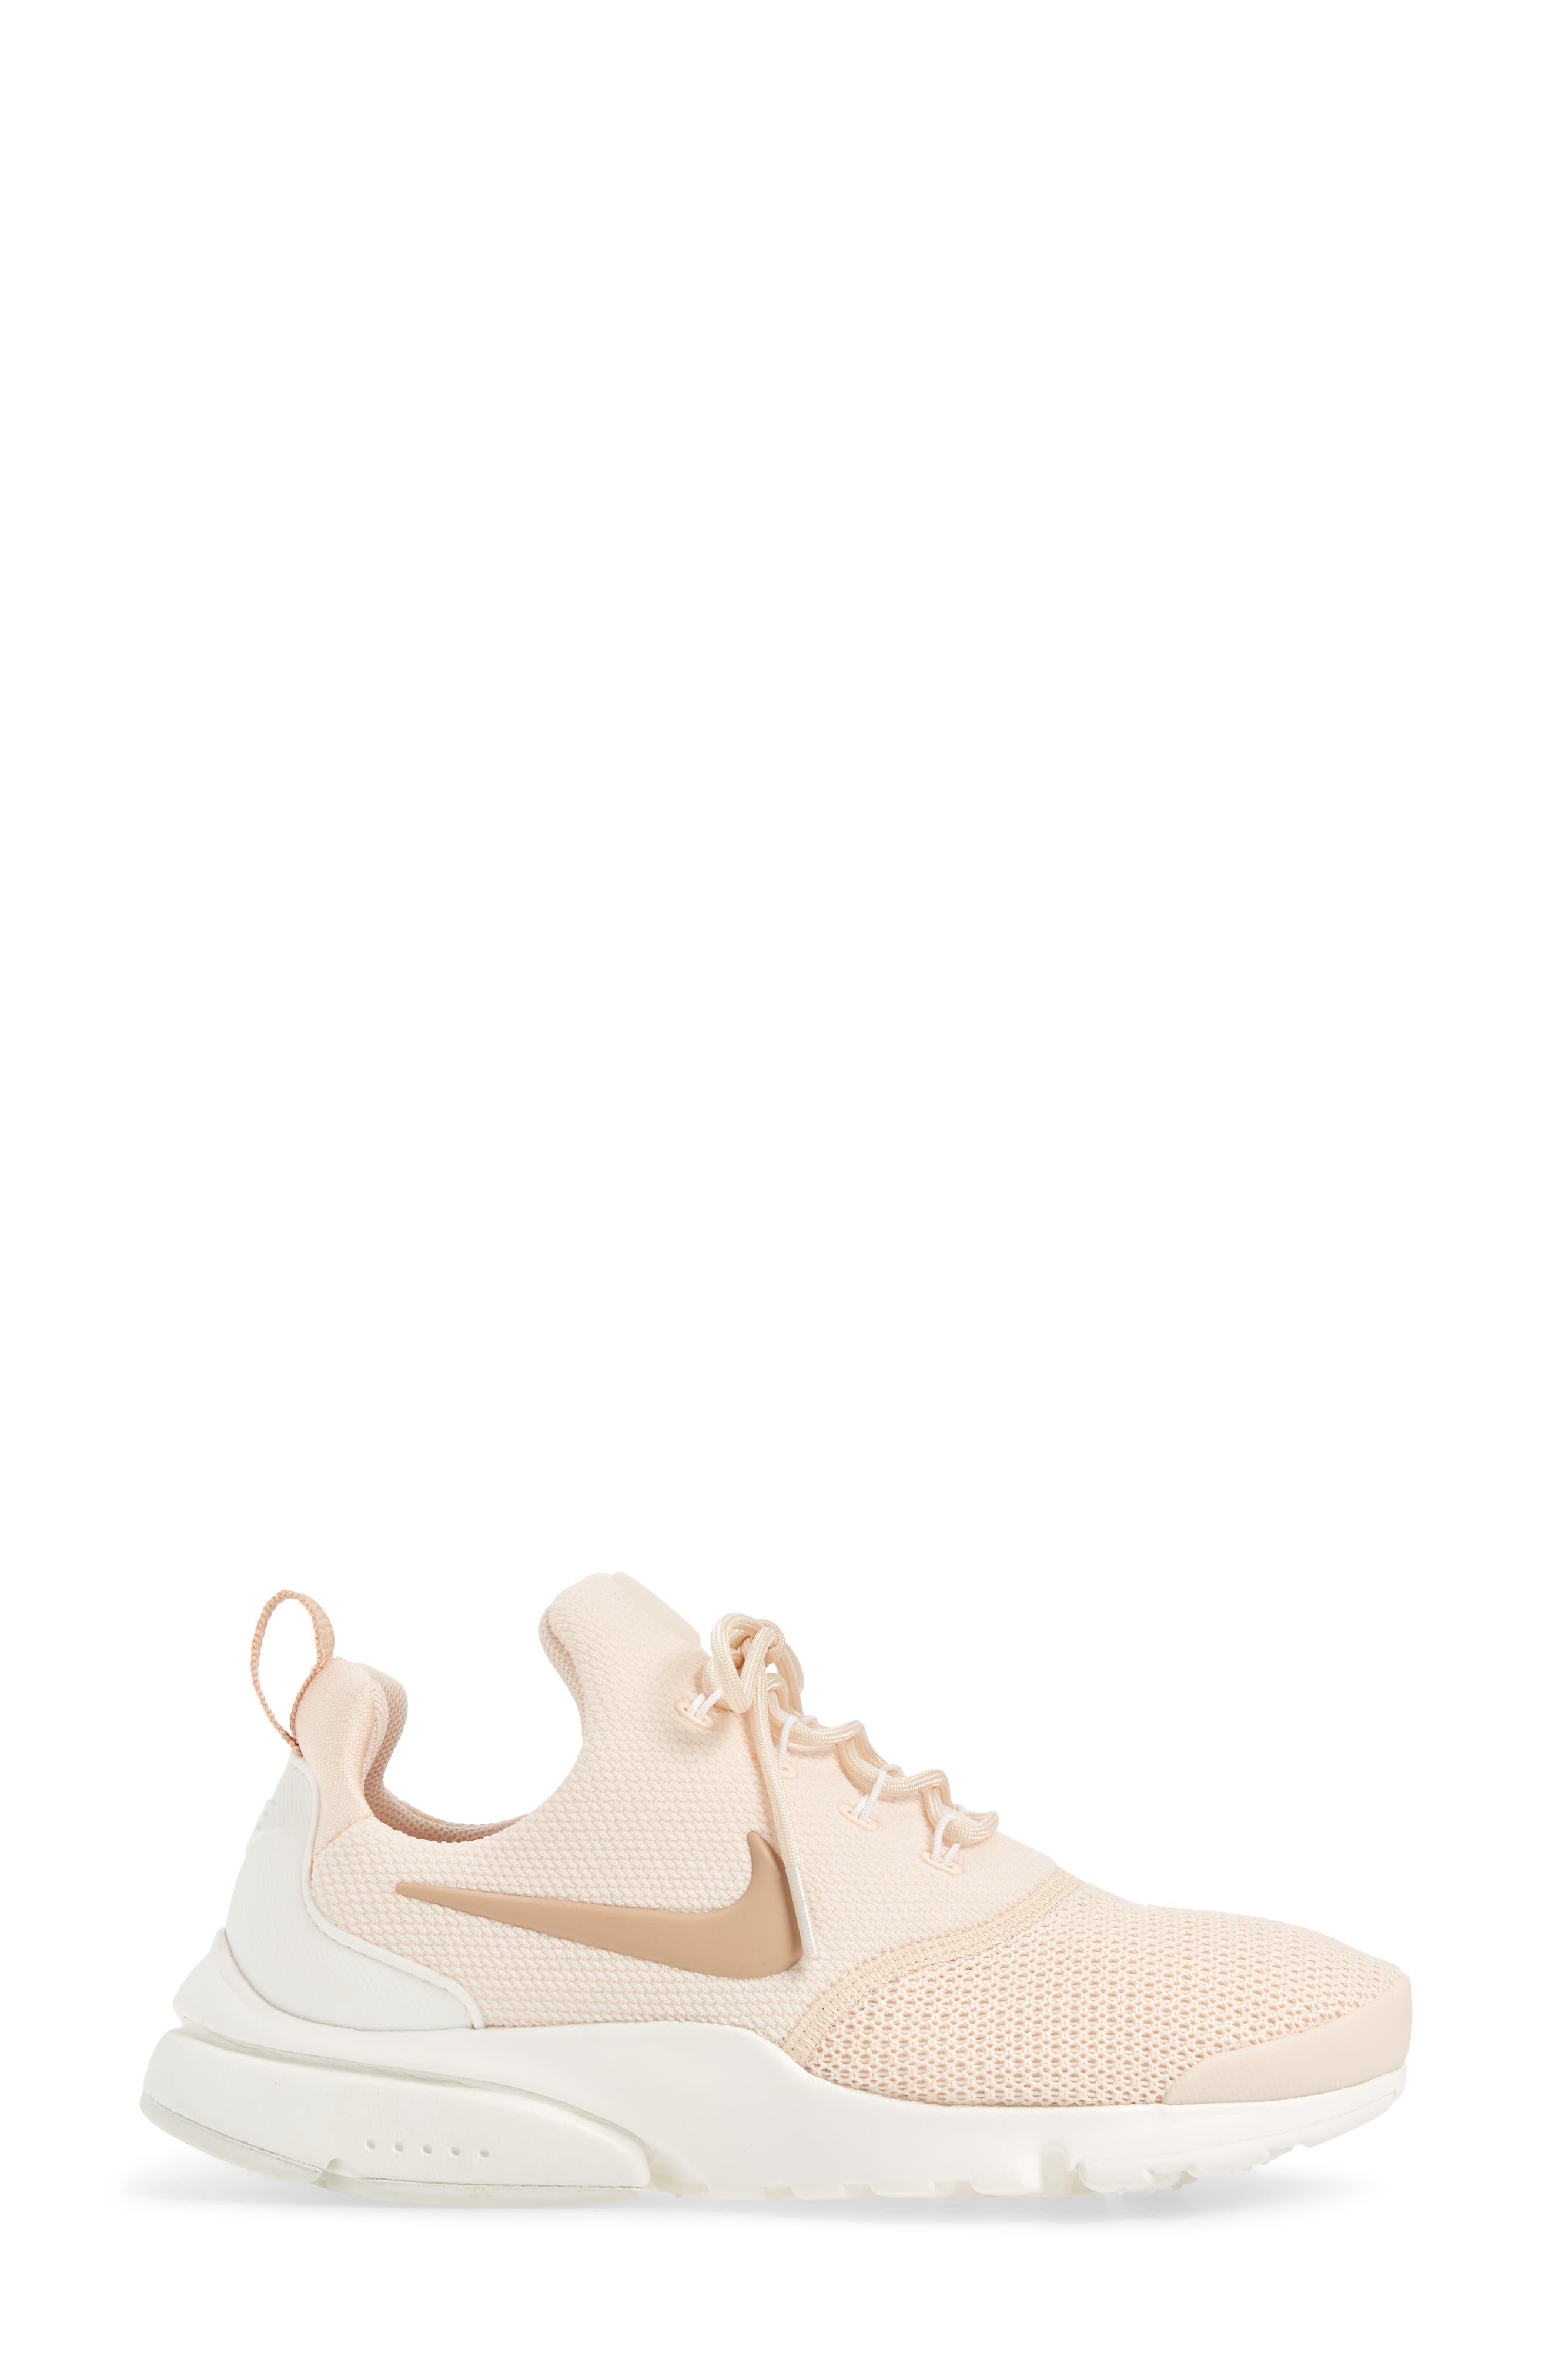 Presto Fly Sneaker,                             Alternate thumbnail 3, color,                             GUAVA ICE/ BEIGE/ SUMMIT WHITE